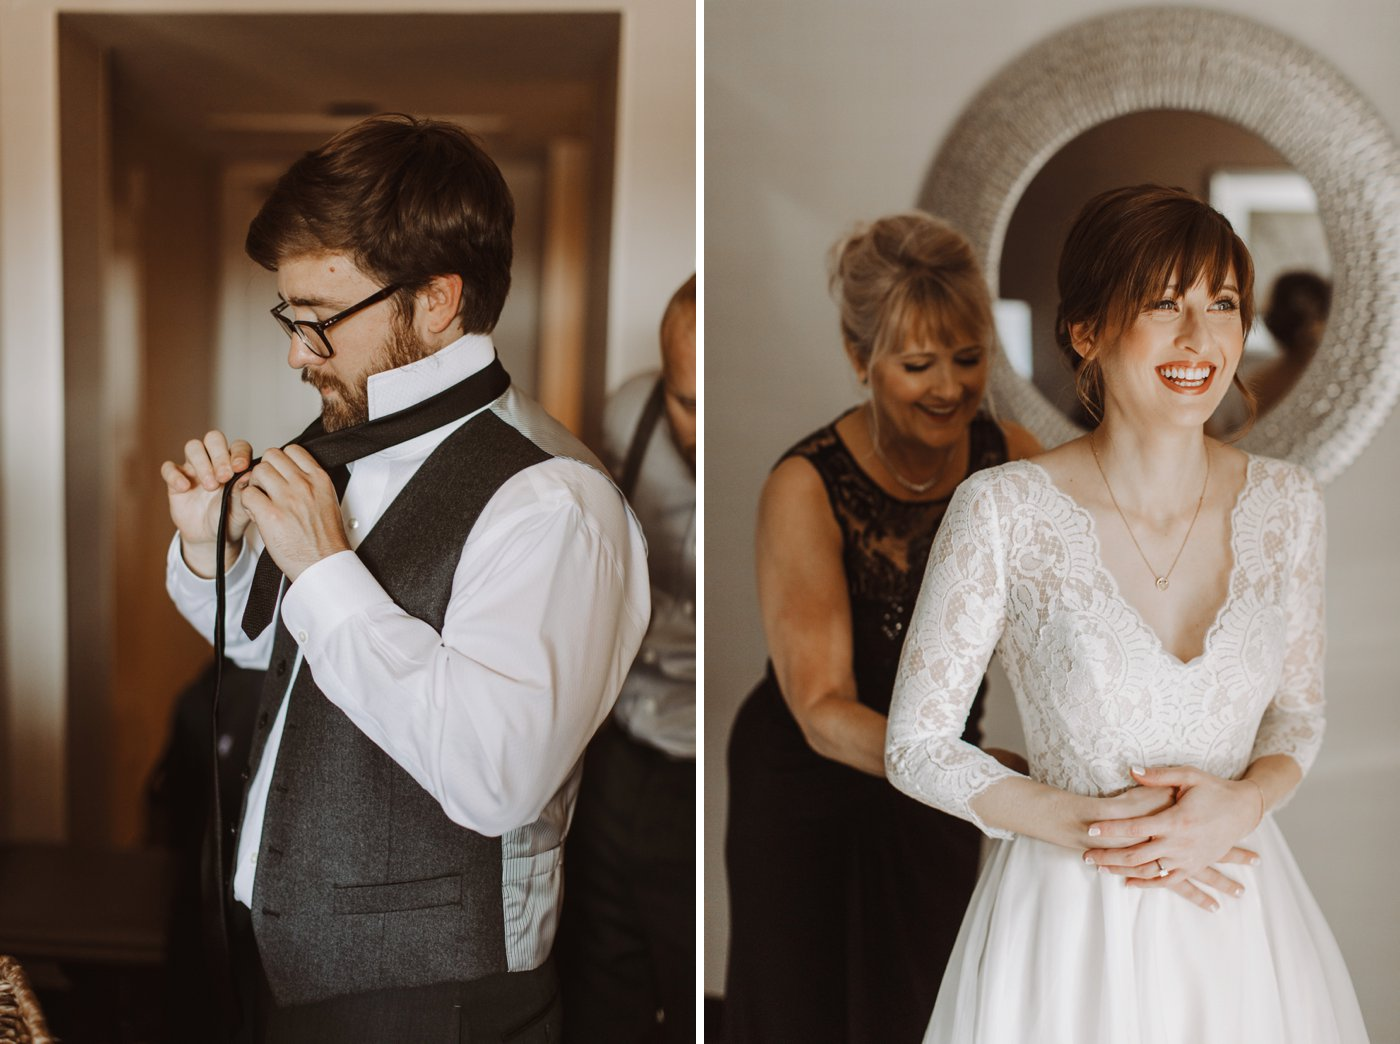 bride and groom getting ready details Mt. Washington Mill Dye House Baltimore wedding photographer